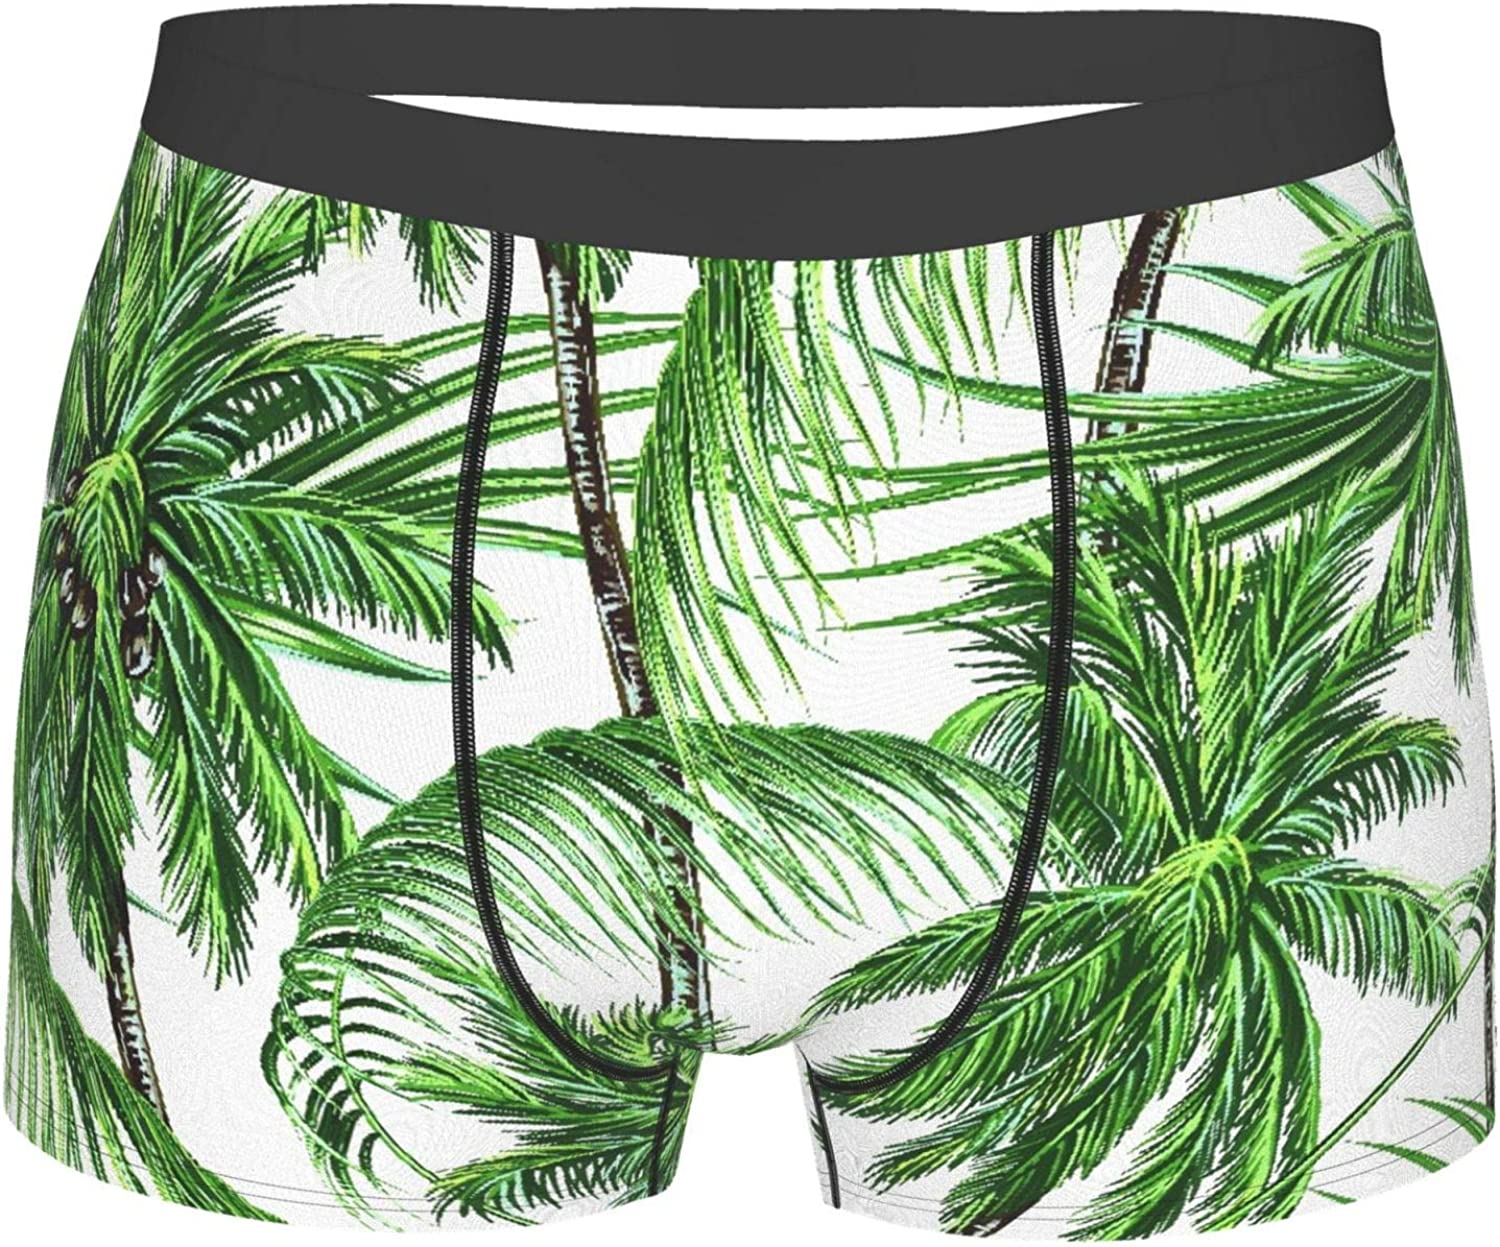 Men's Underwear, Premium Palm Trees Tropical Leaves Thermal Insulated,Boxer Briefs Breathable Comfort Underpants Size S